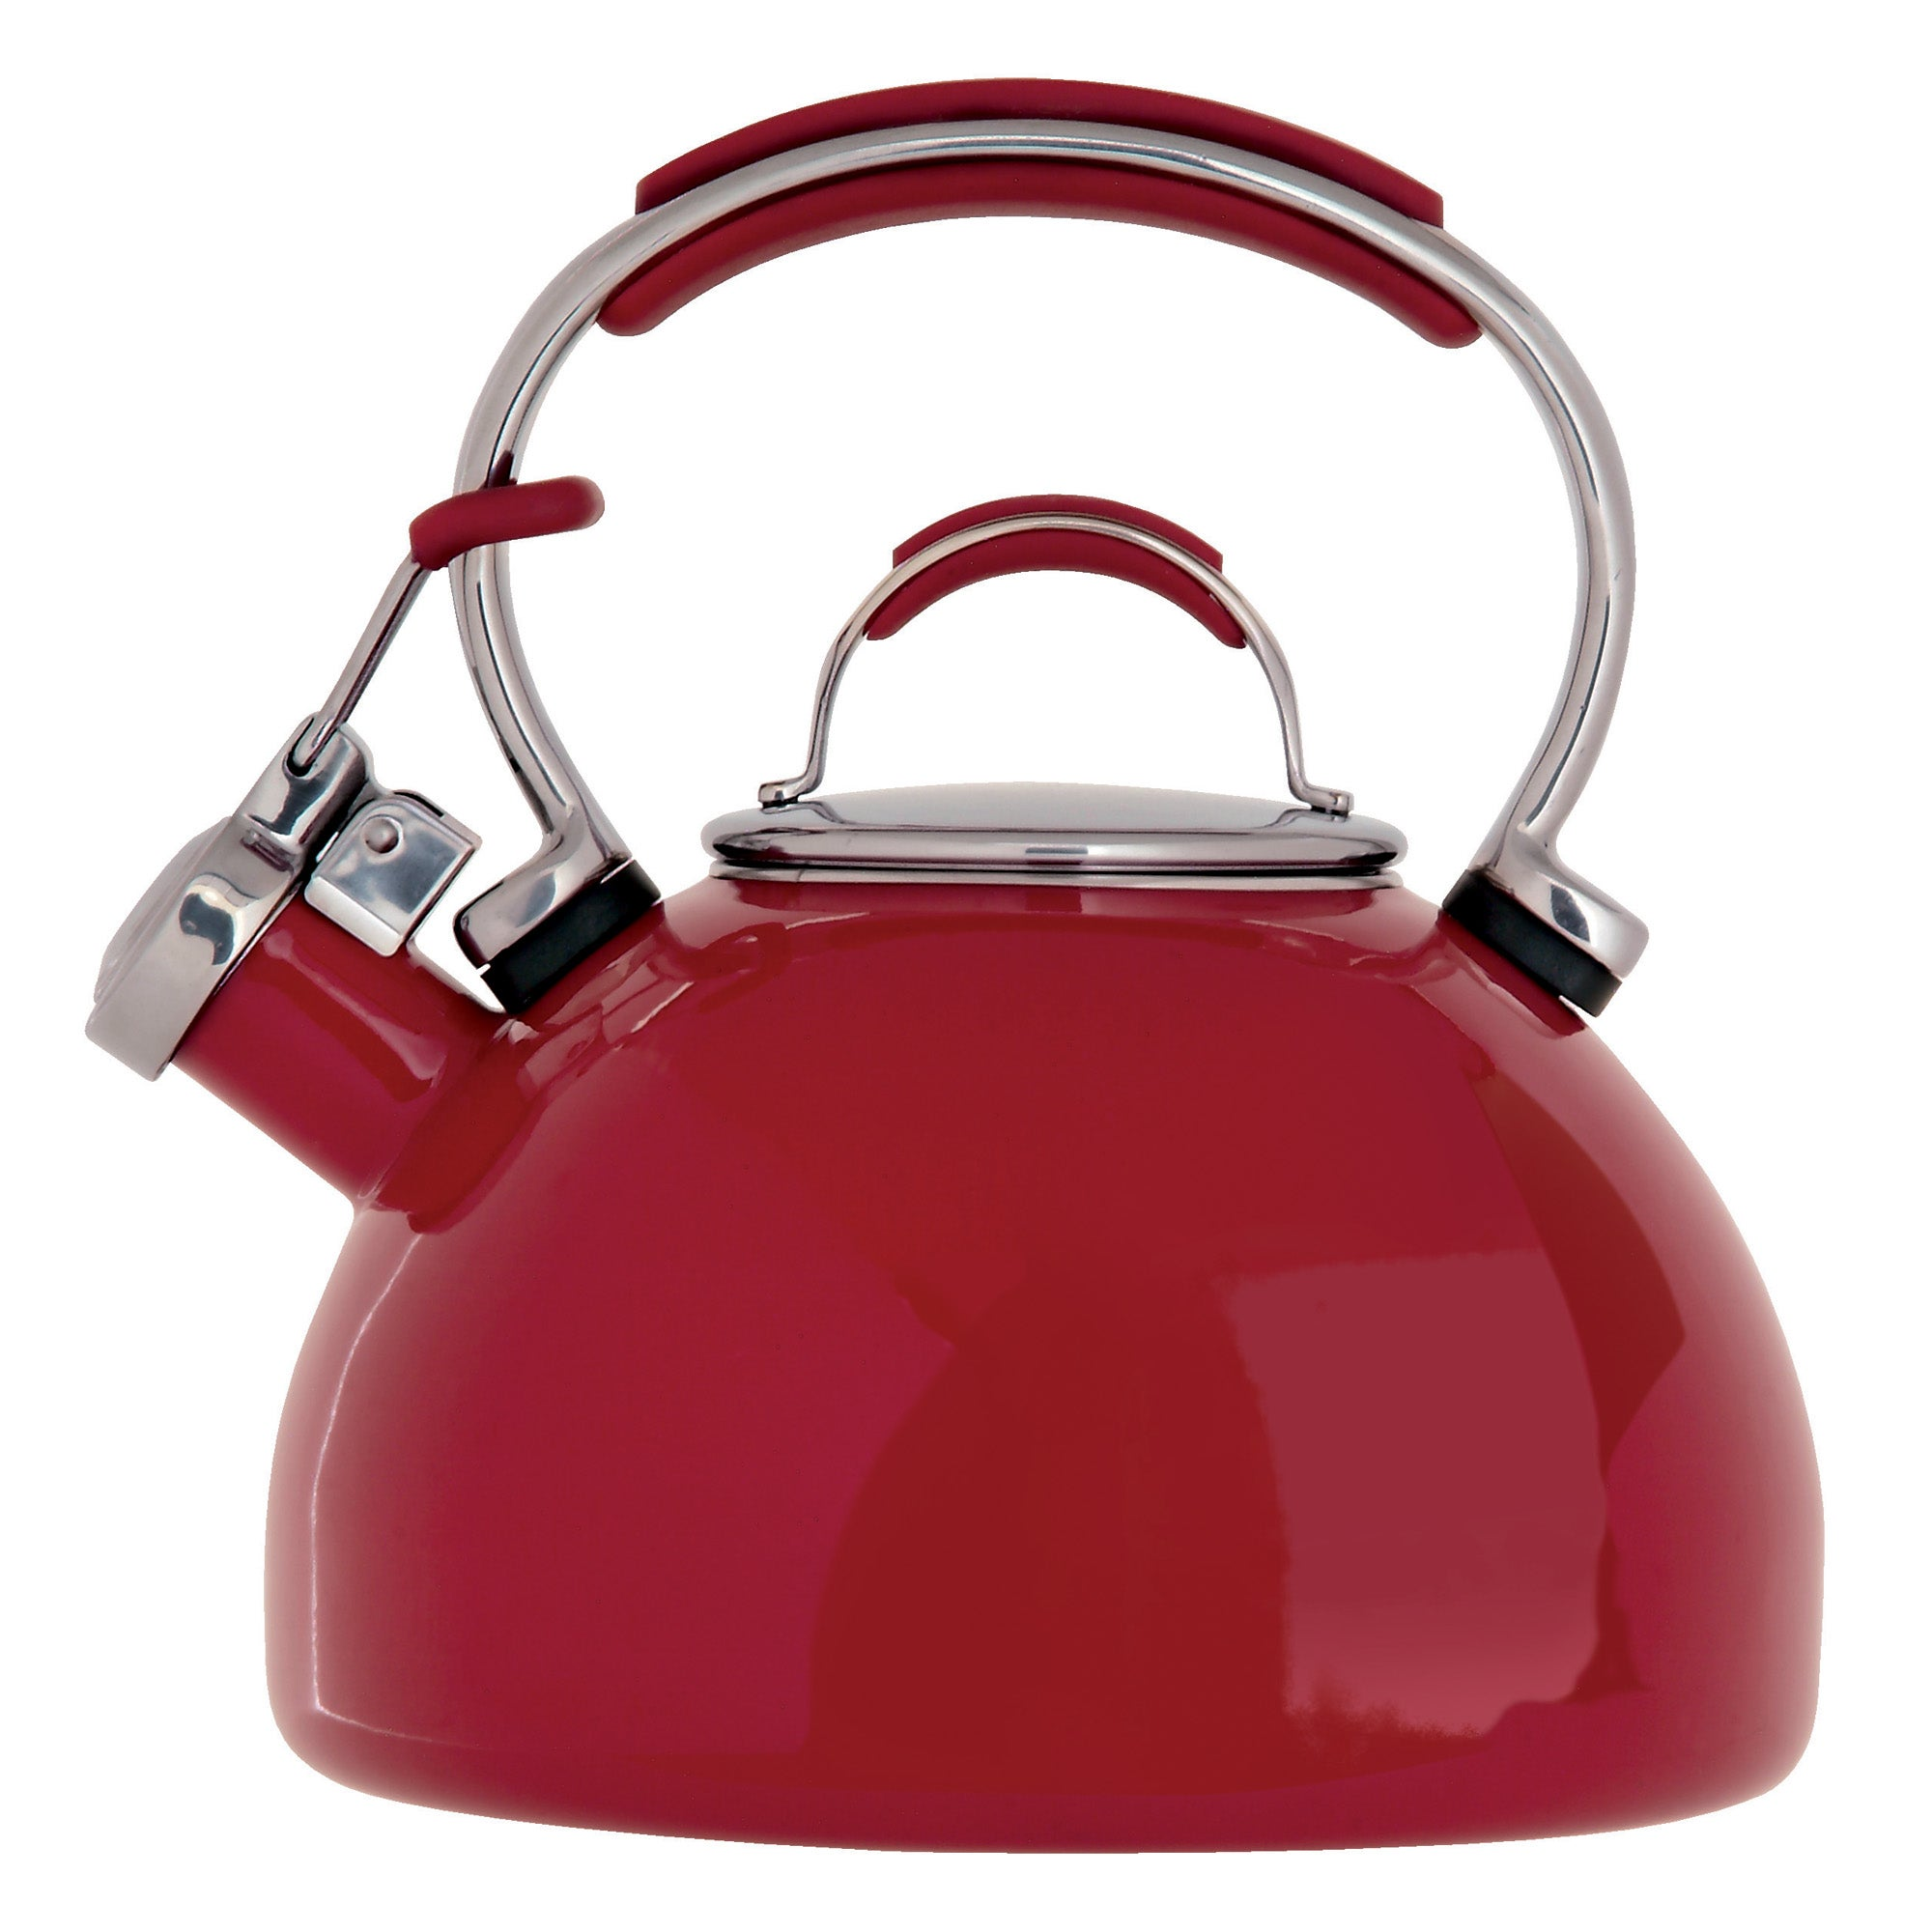 Click to view product details and reviews for Prestige Stove Top 2l Red Kettle Red.